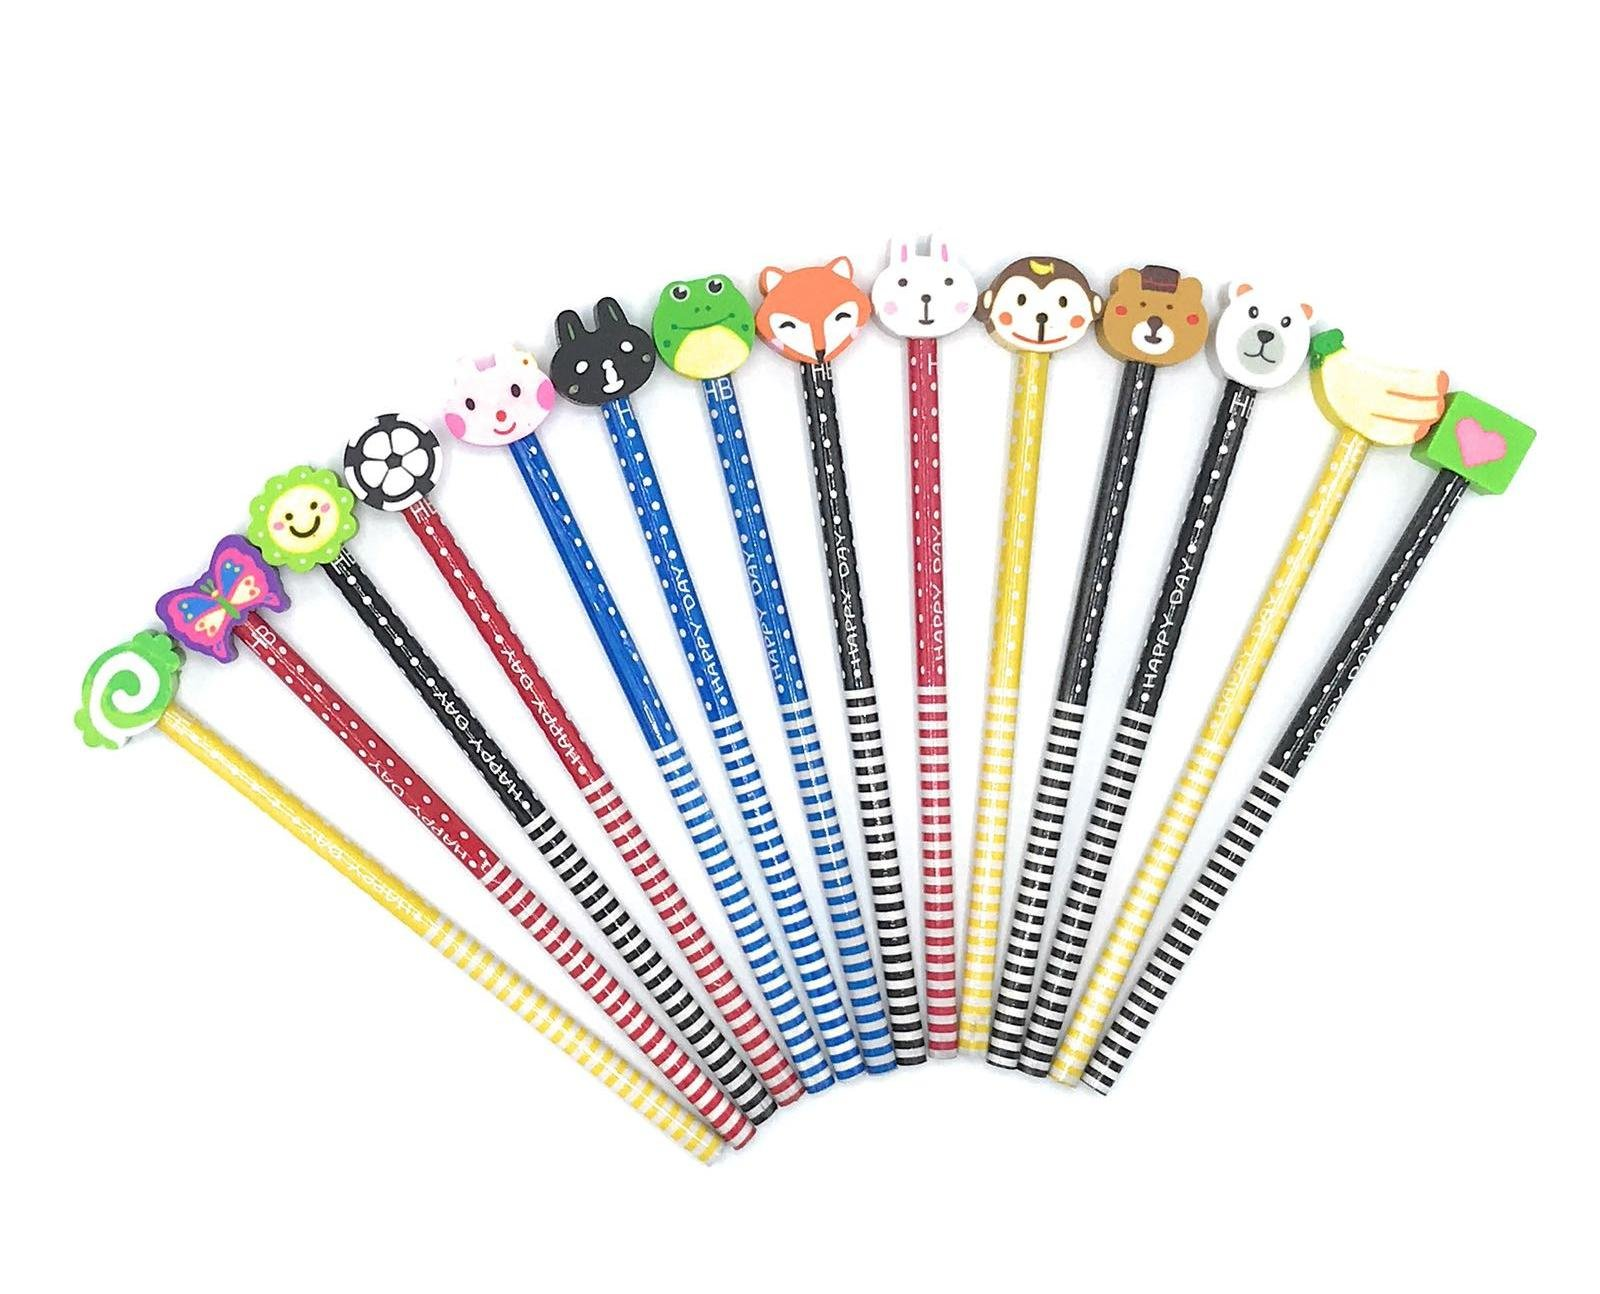 Gennilo Pack of 40 Pencils with Erasers Colorful Novelty Cartoon Animals' Stripe Eraser Wood Pencils (7.28'') for Students & Children Gift (40pcs cartoon pencil with eraser), Animals Assorted by Gennilo (Image #1)